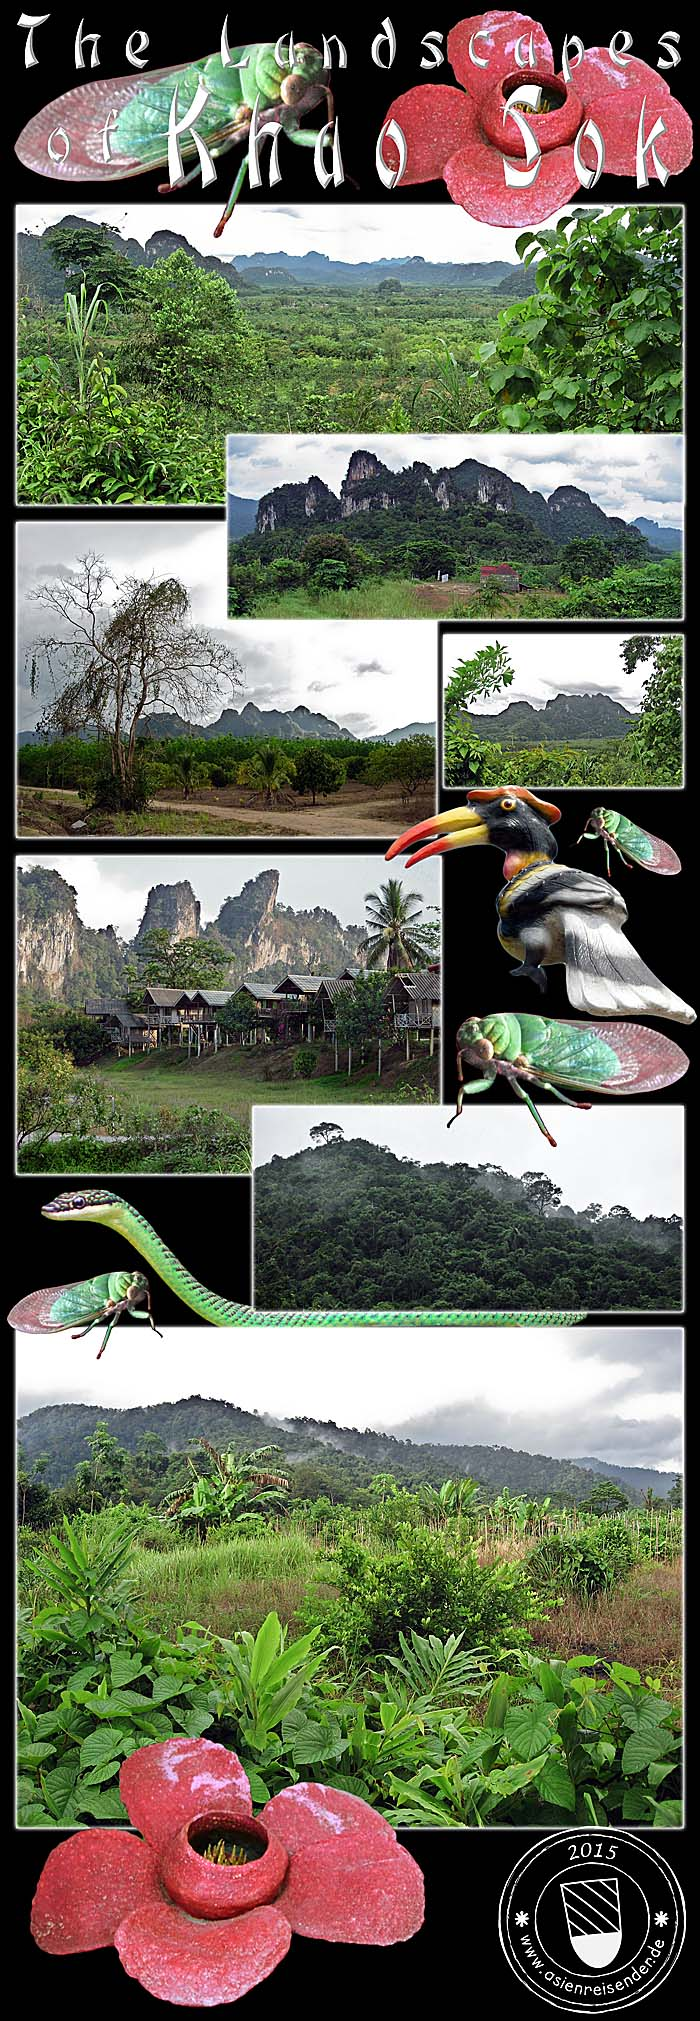 Photocomposition 'Landscapes of Khao Sok' by Asienreisender